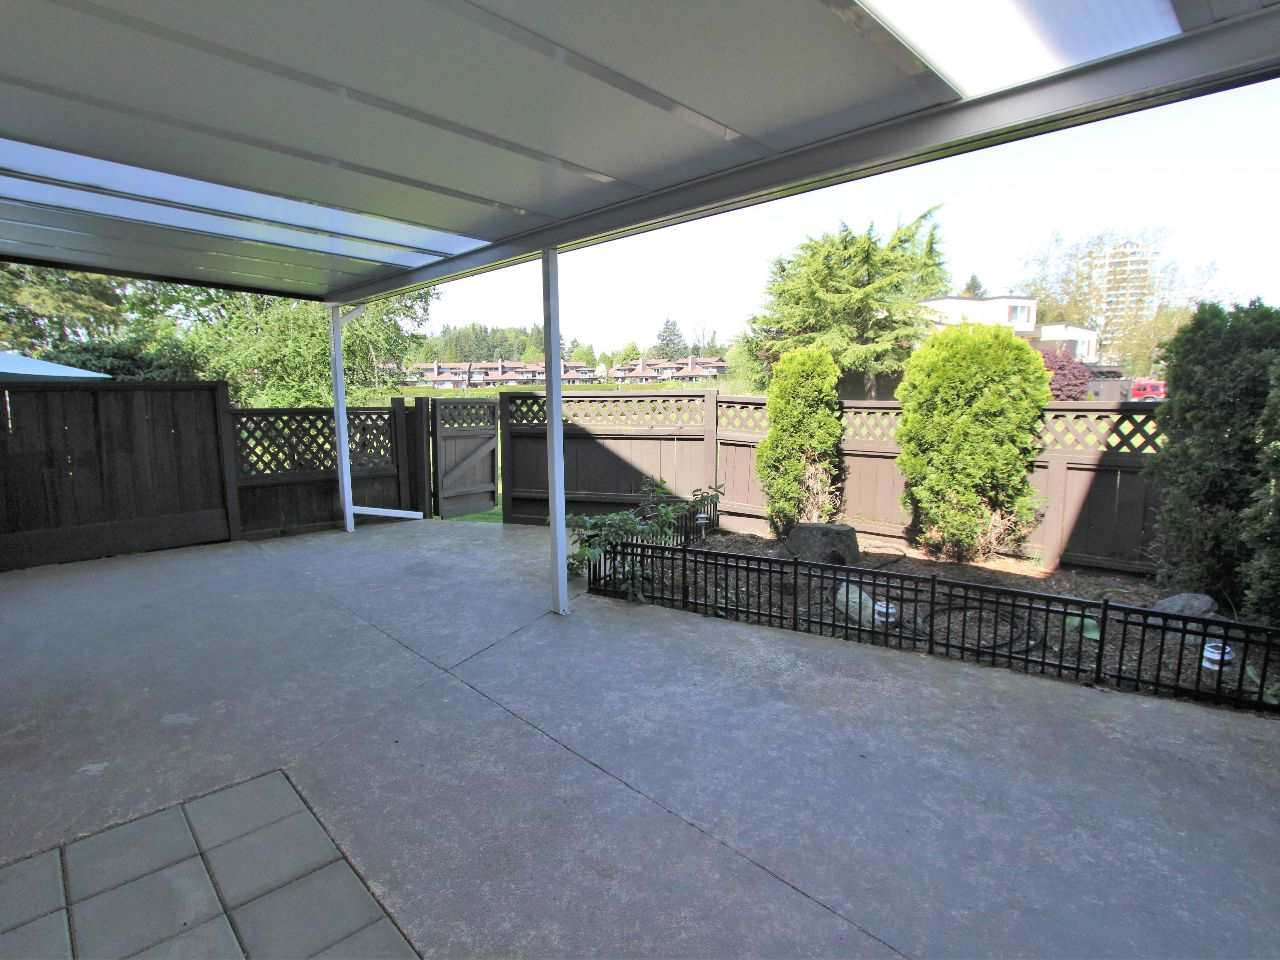 Photo 17: 606 2445 WARE Street in Abbotsford: Central Abbotsford Townhouse for sale : MLS® # R2059494